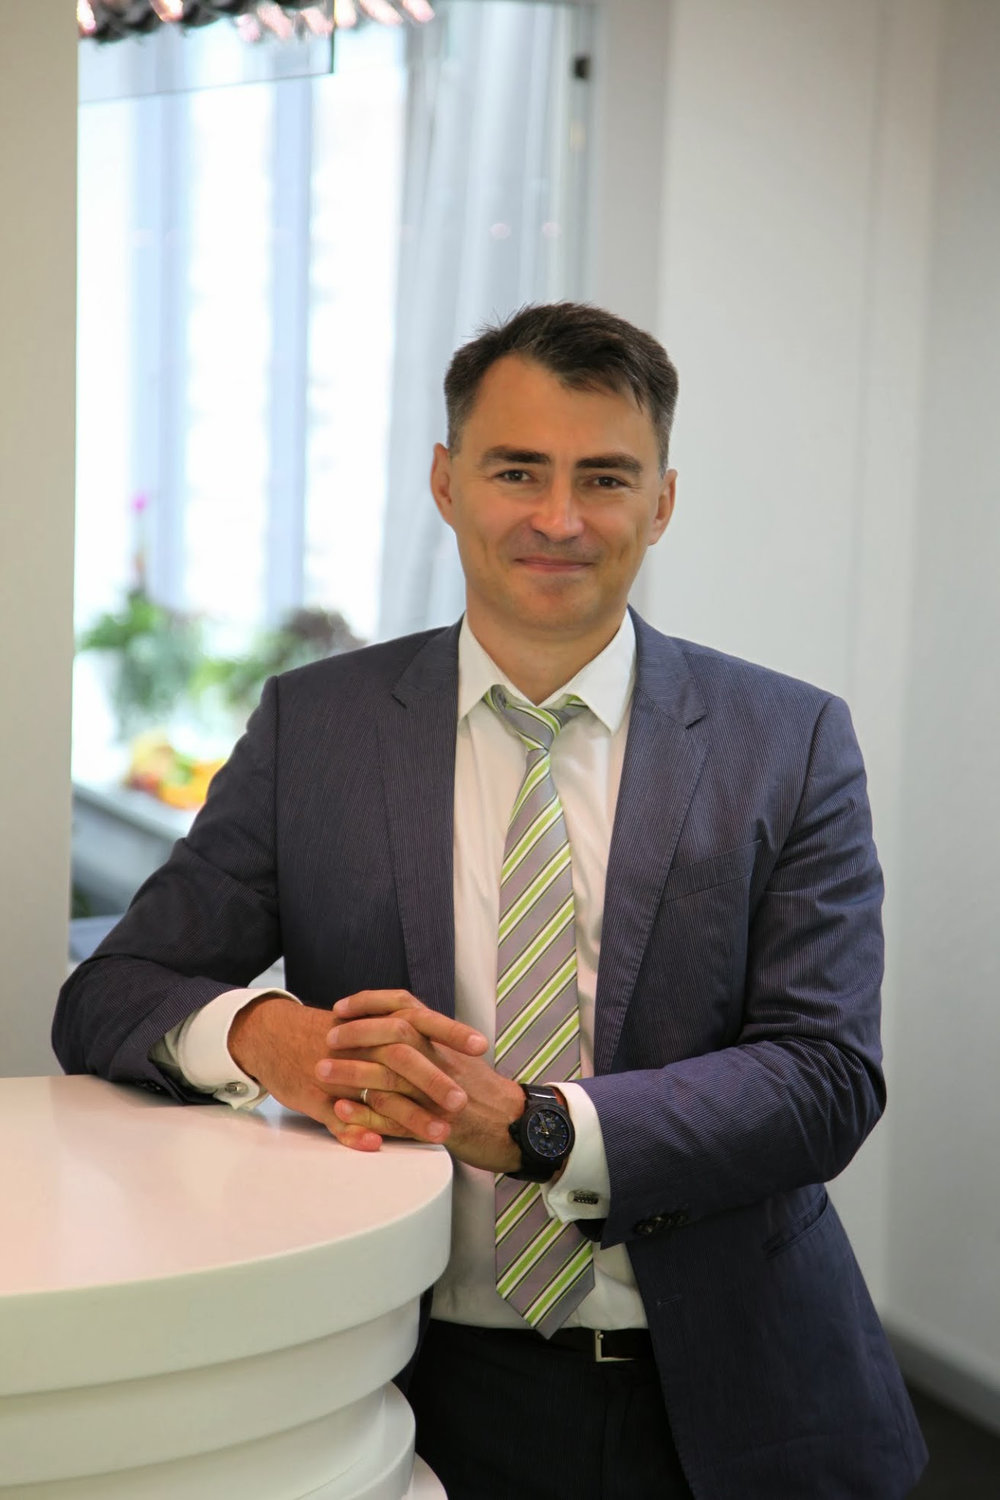 Vitali Butbaev, Founder of Velstand Capital Aps